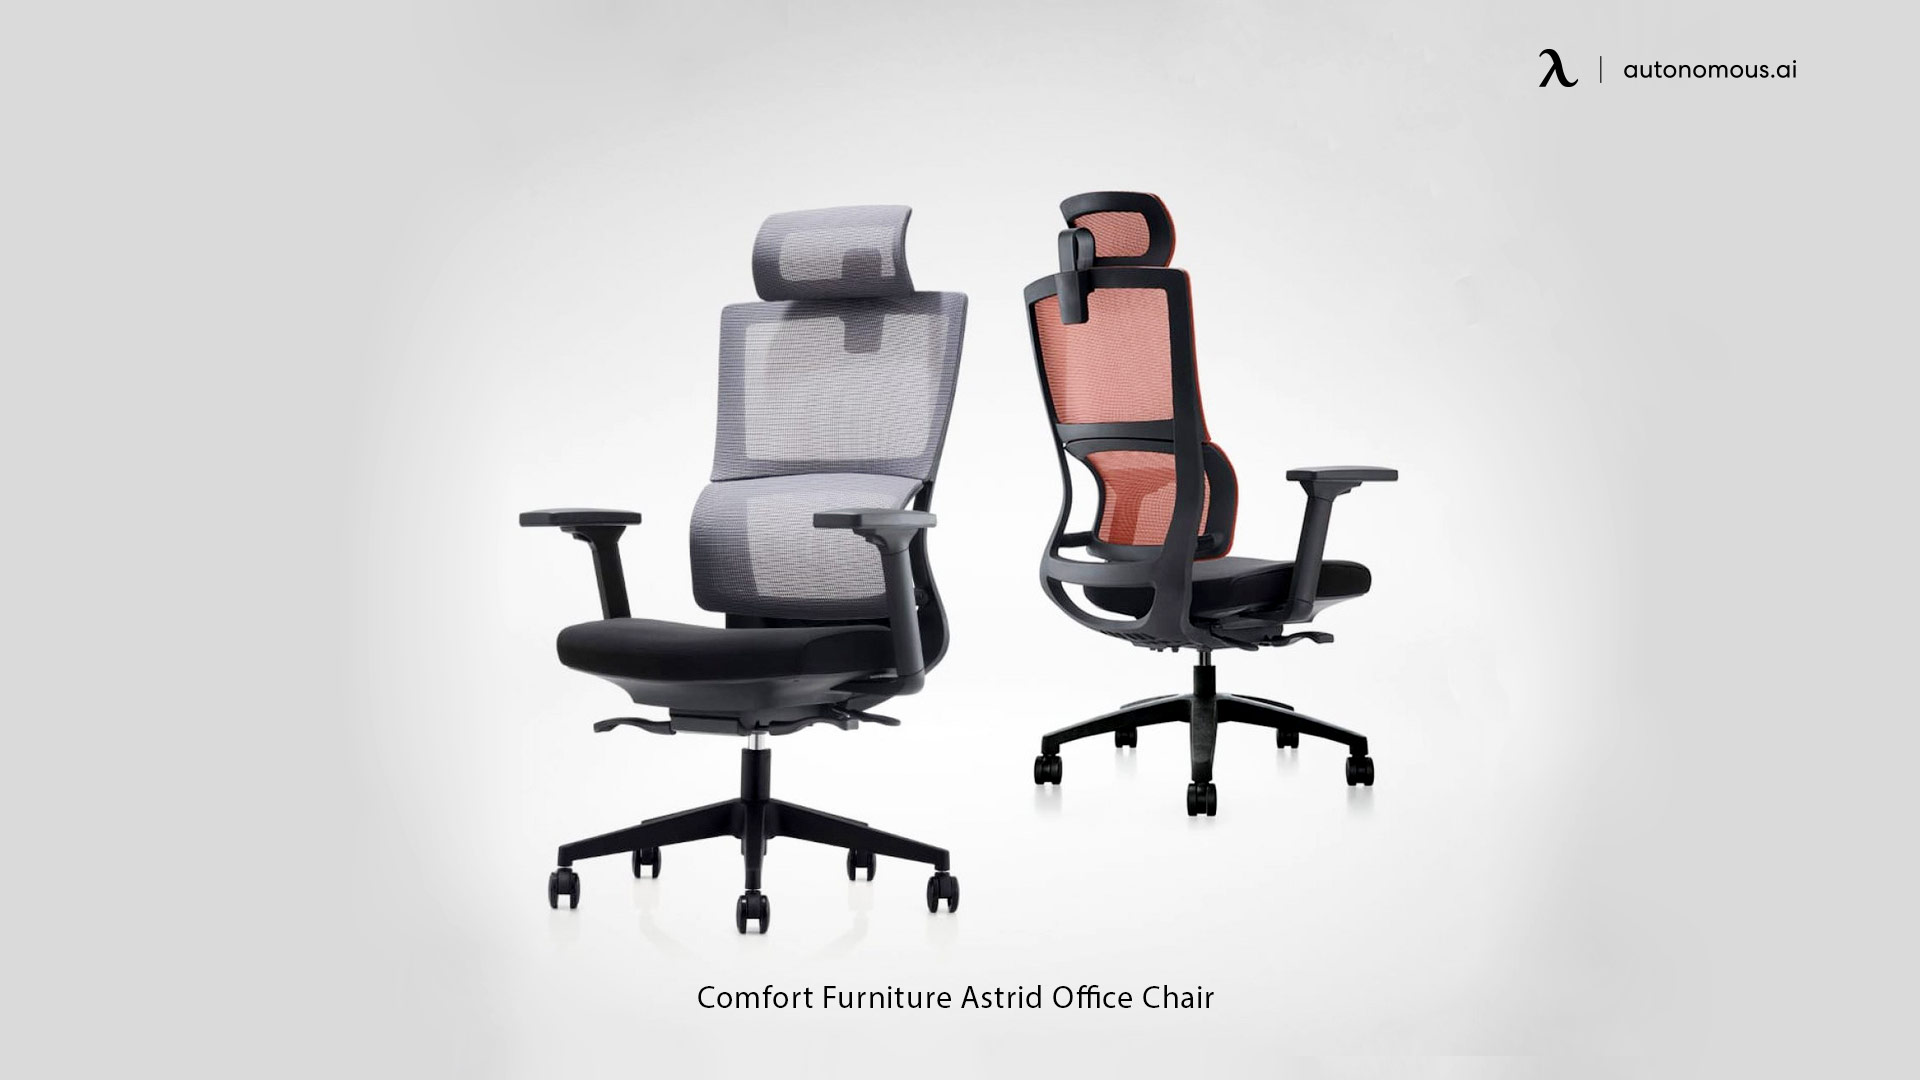 Comfort Furniture Astrid Office Chair